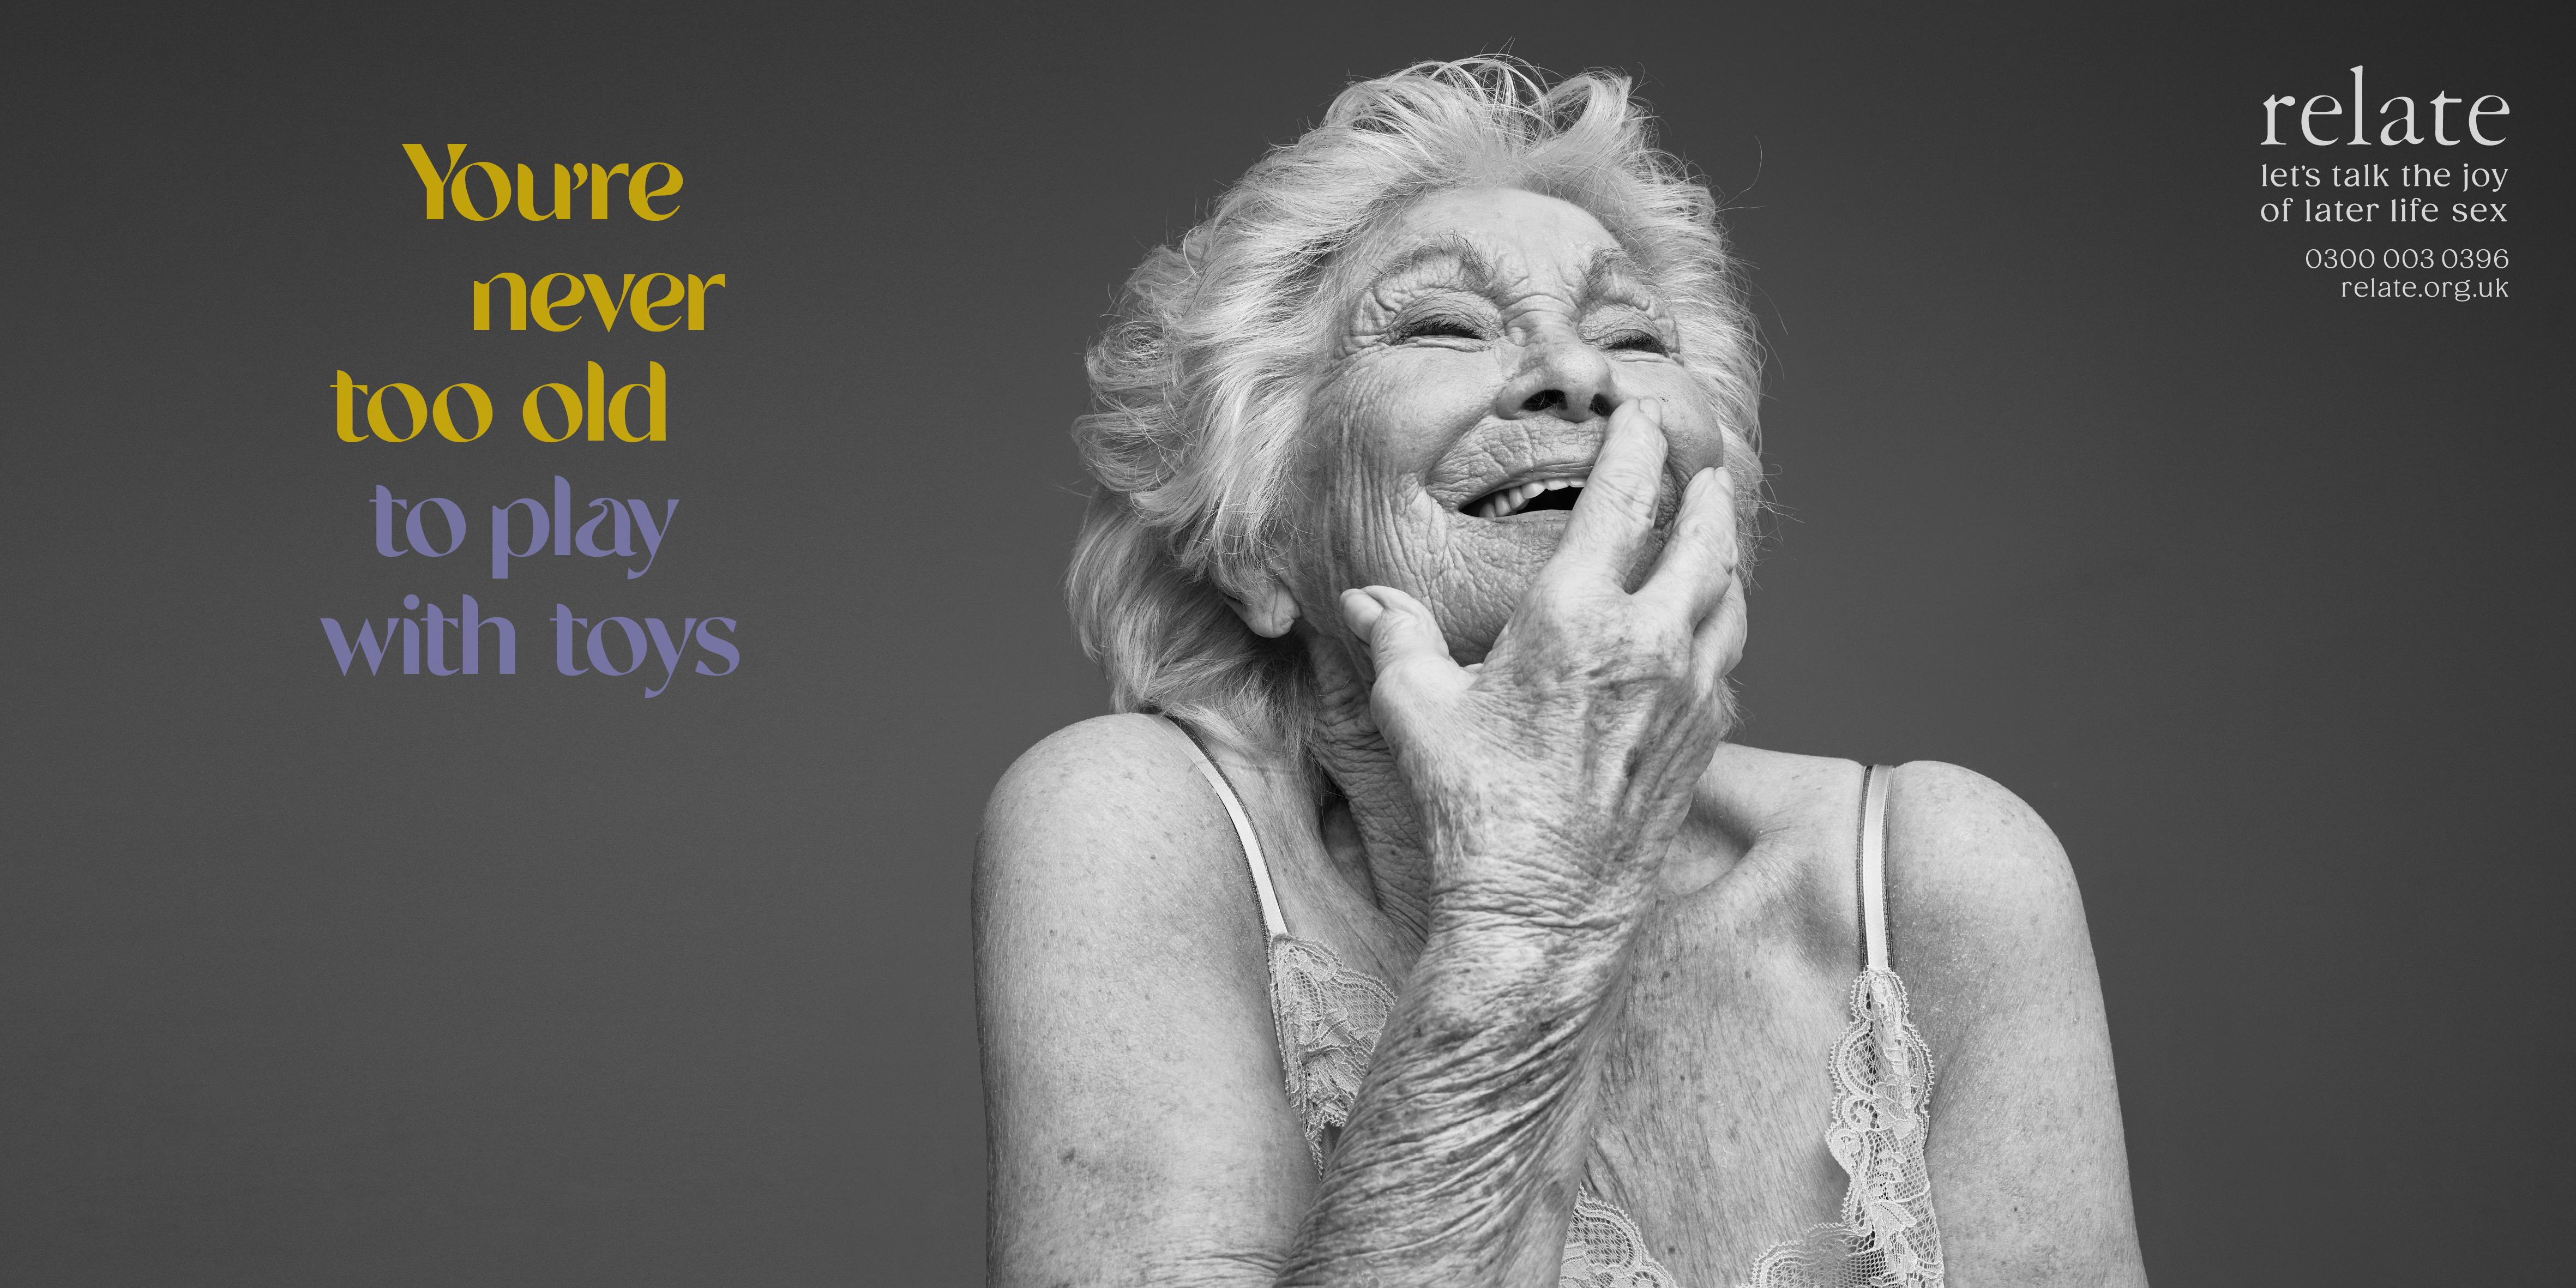 older woman smiling with caption 'You're never too old to play with toys'